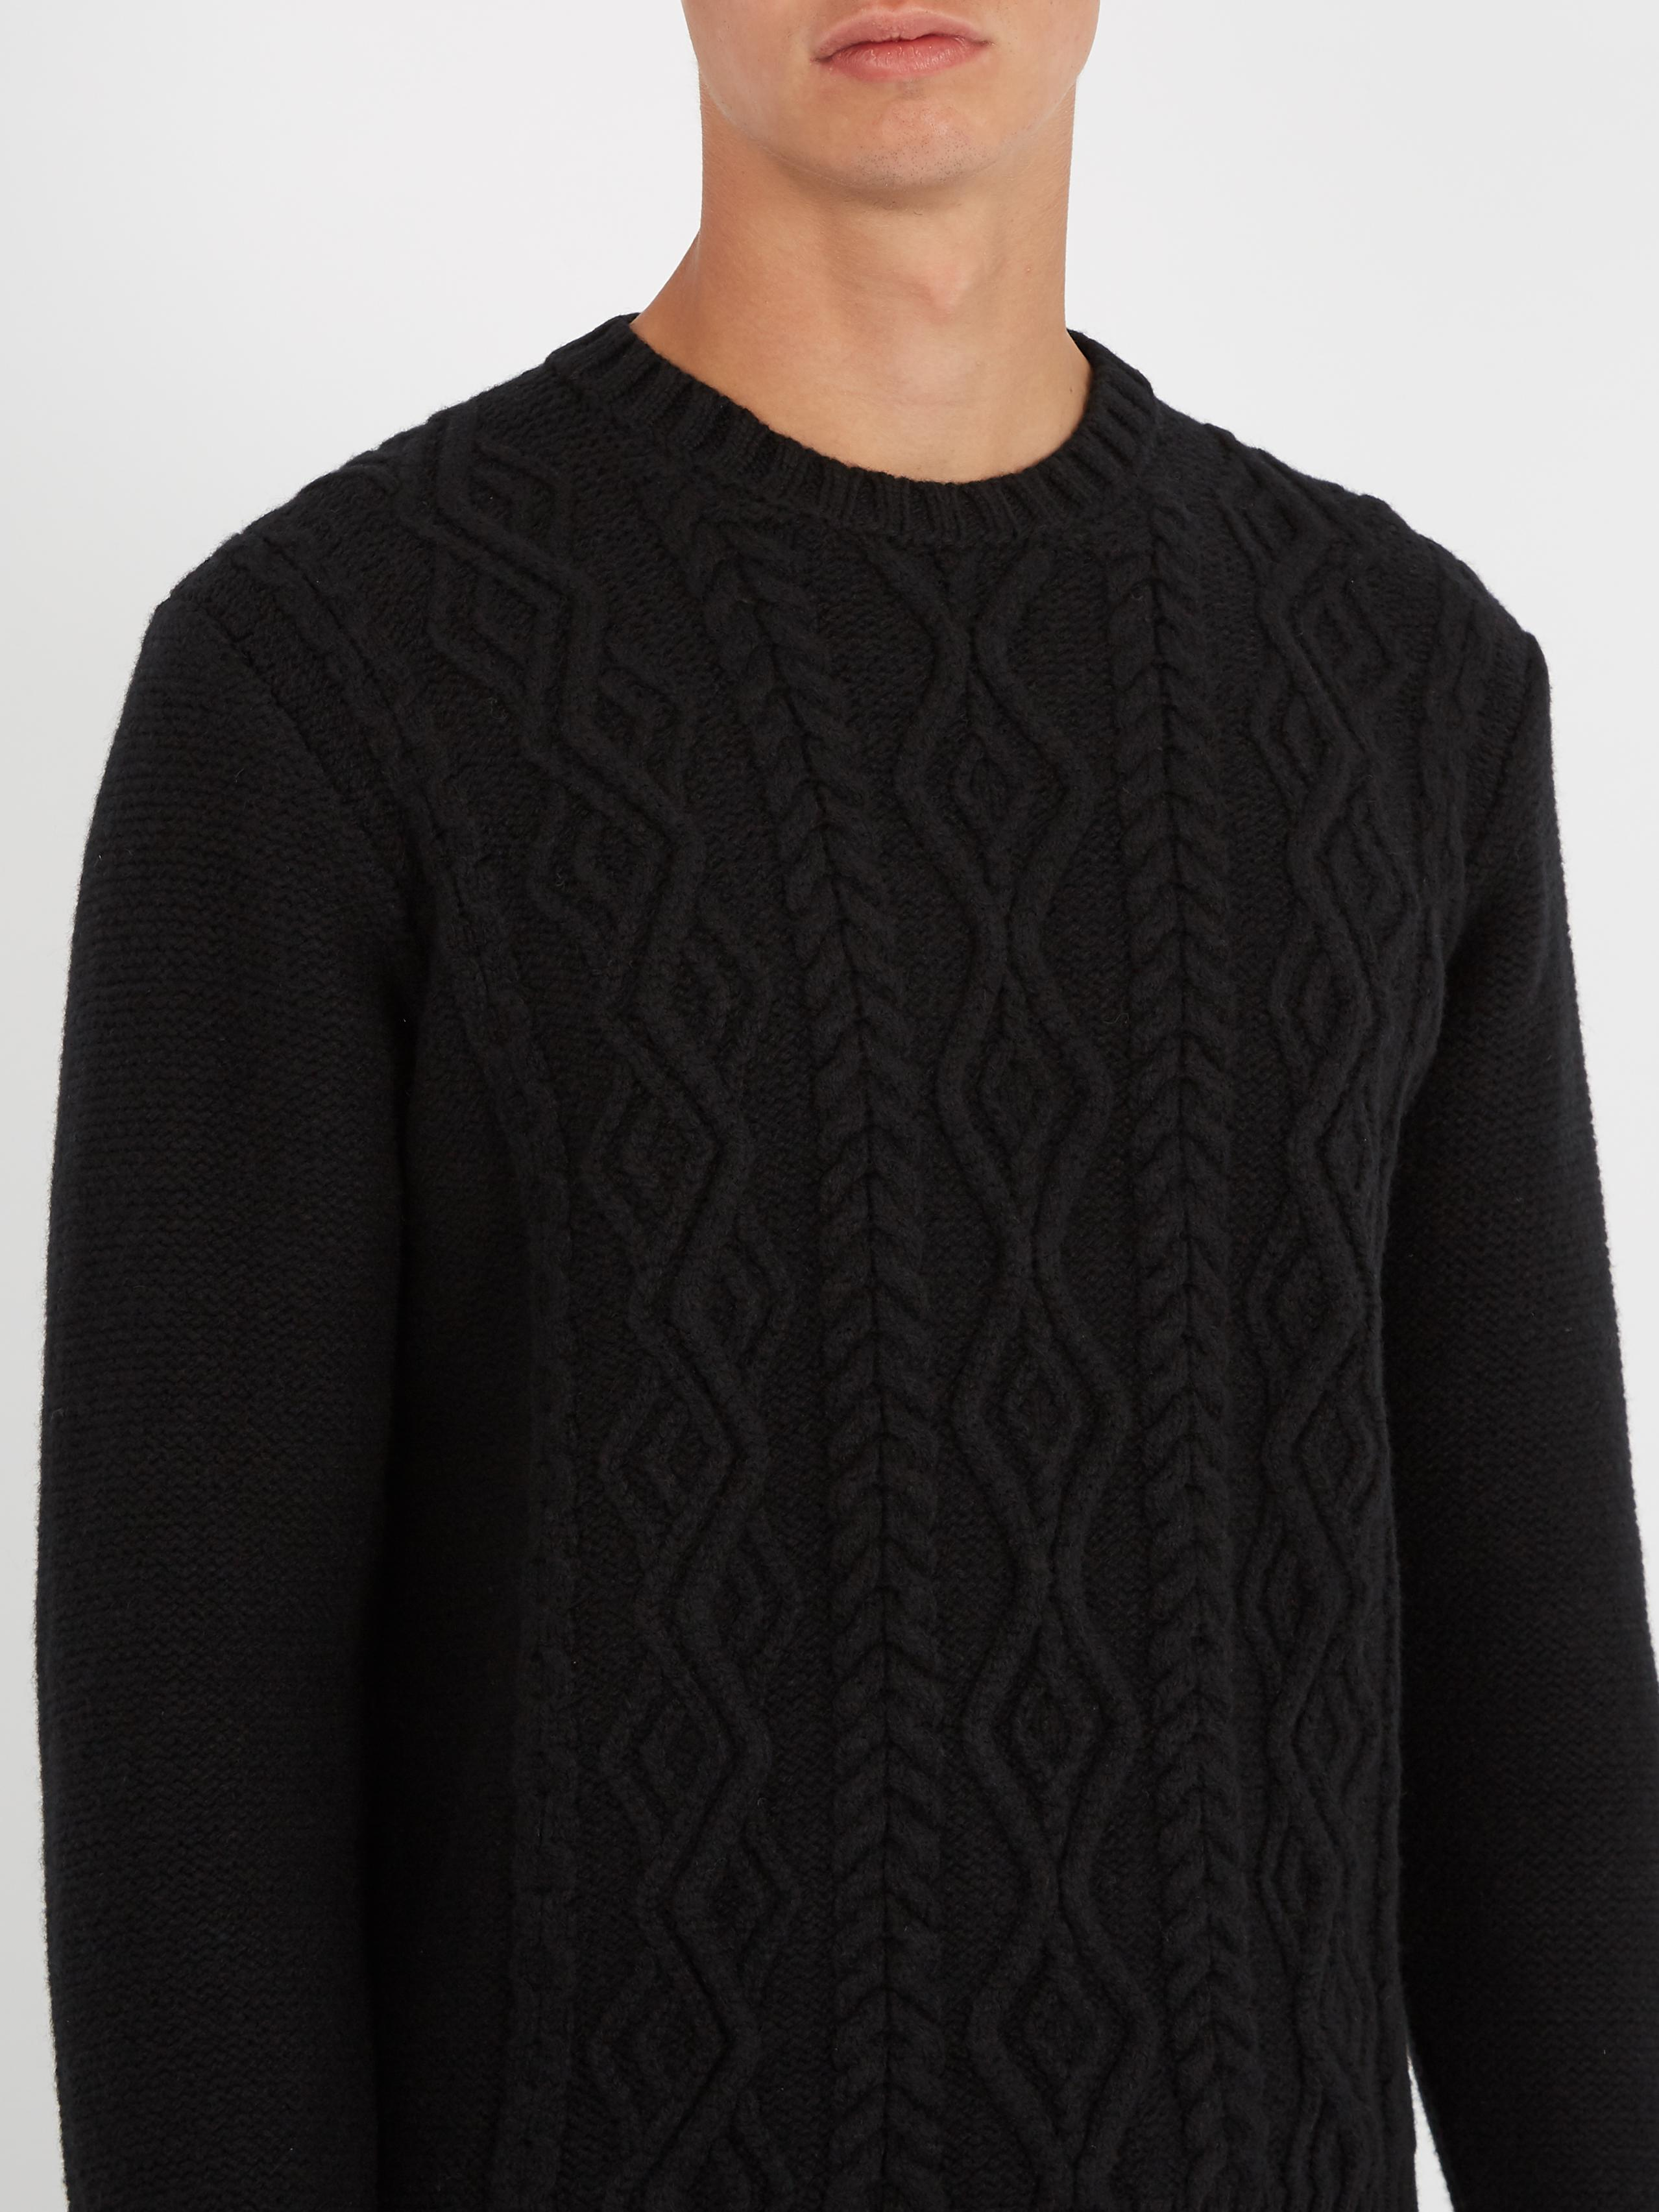 Lyst - Inis Meáin Aran Cable-knit Wool Sweater in Black ...